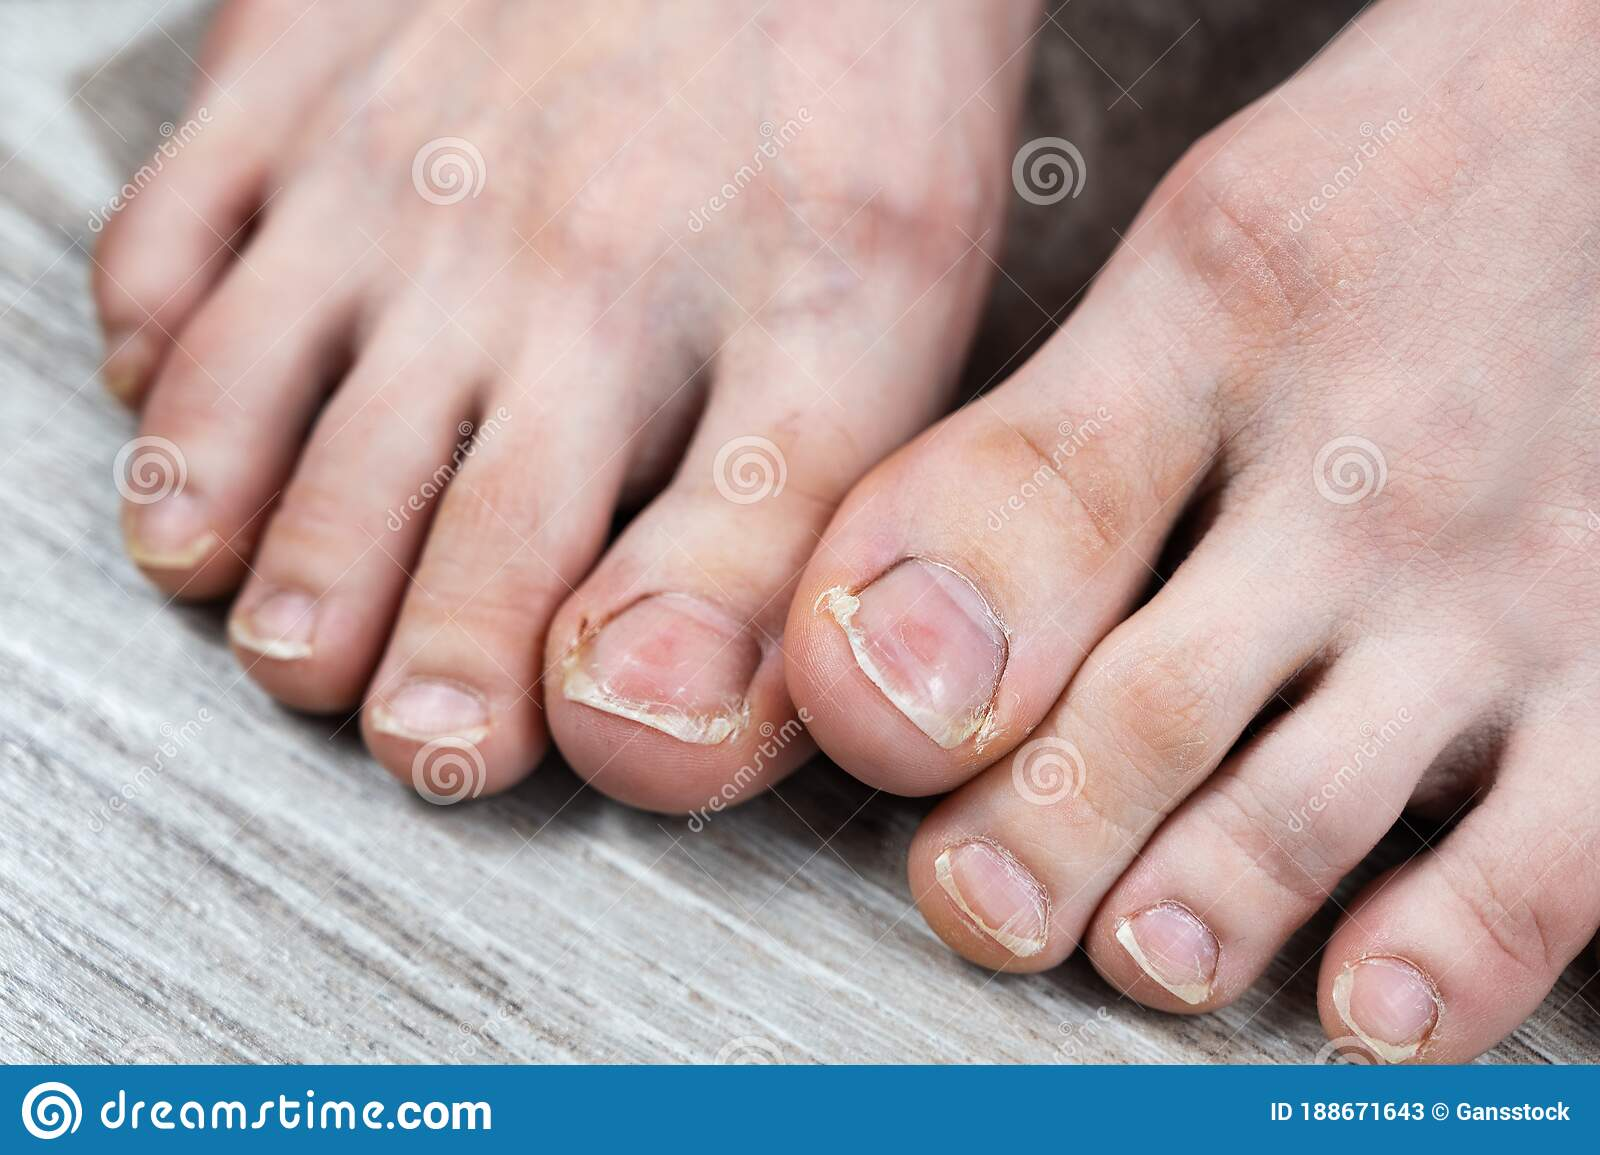 Images Of Ugly Toenails photo 21